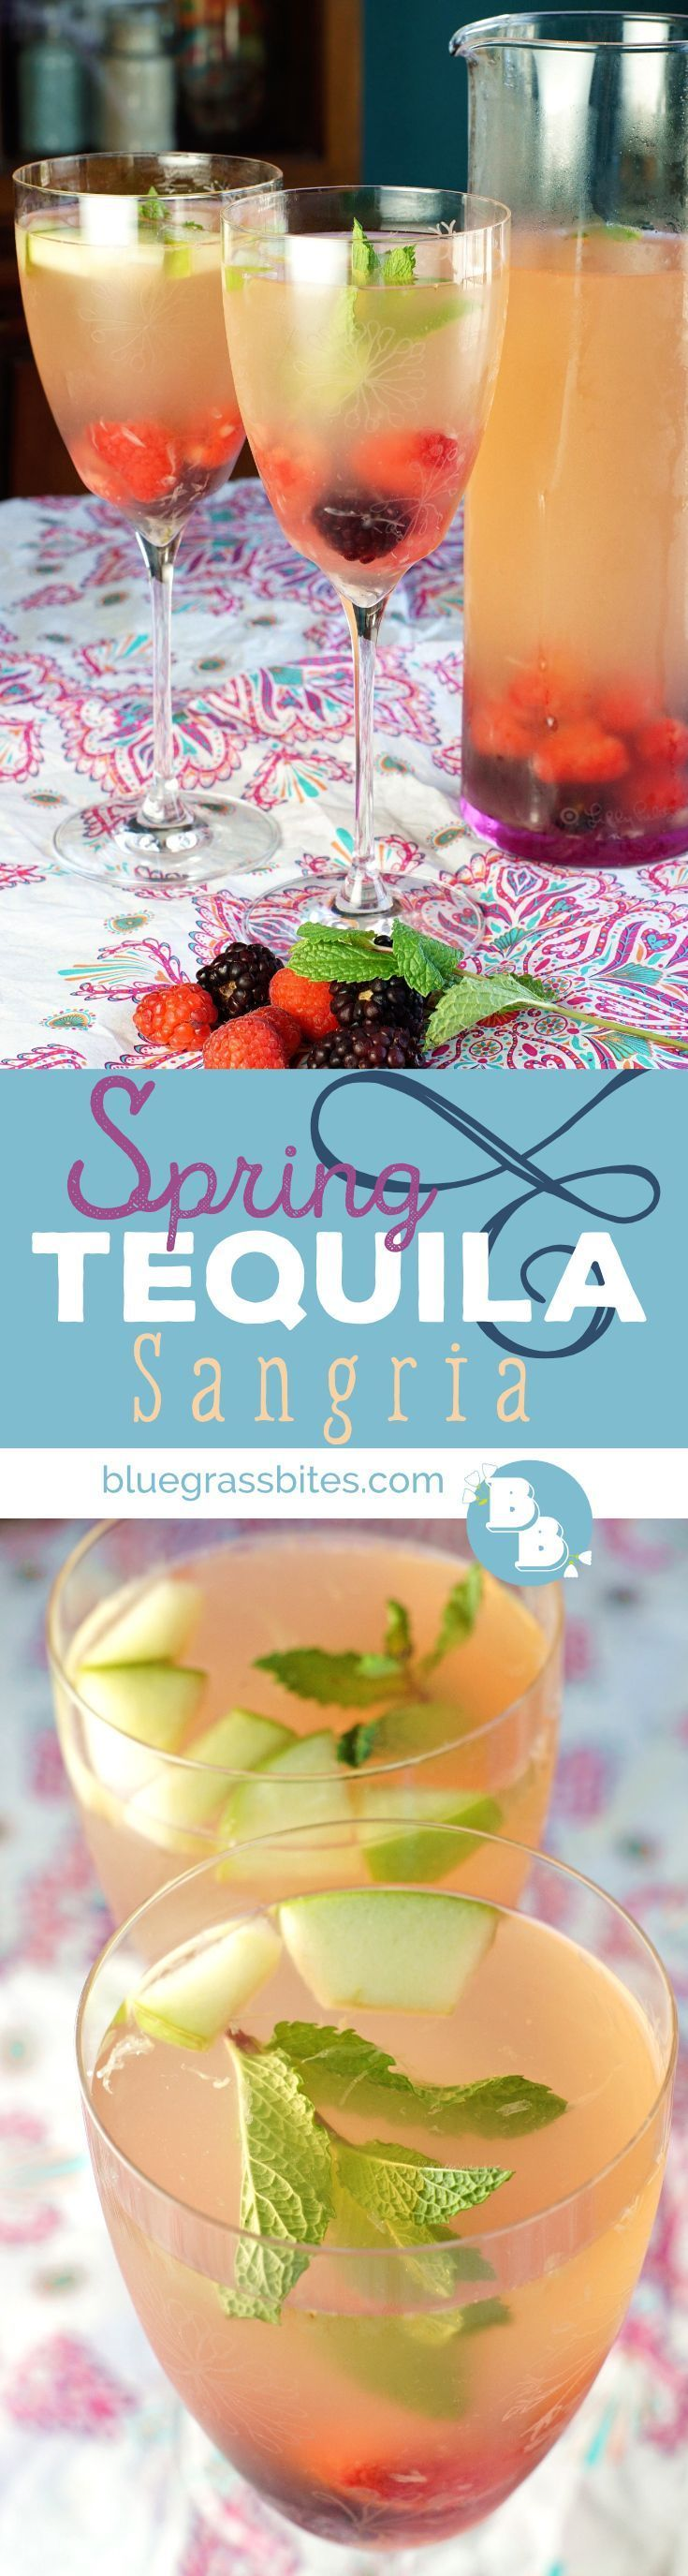 Spring Tequila Sangria | This refreshing white wine/tequila cocktail is packed with spring berries, sweetened with agave nectar, and contains notes of fresh mint. /bluegrassbites/